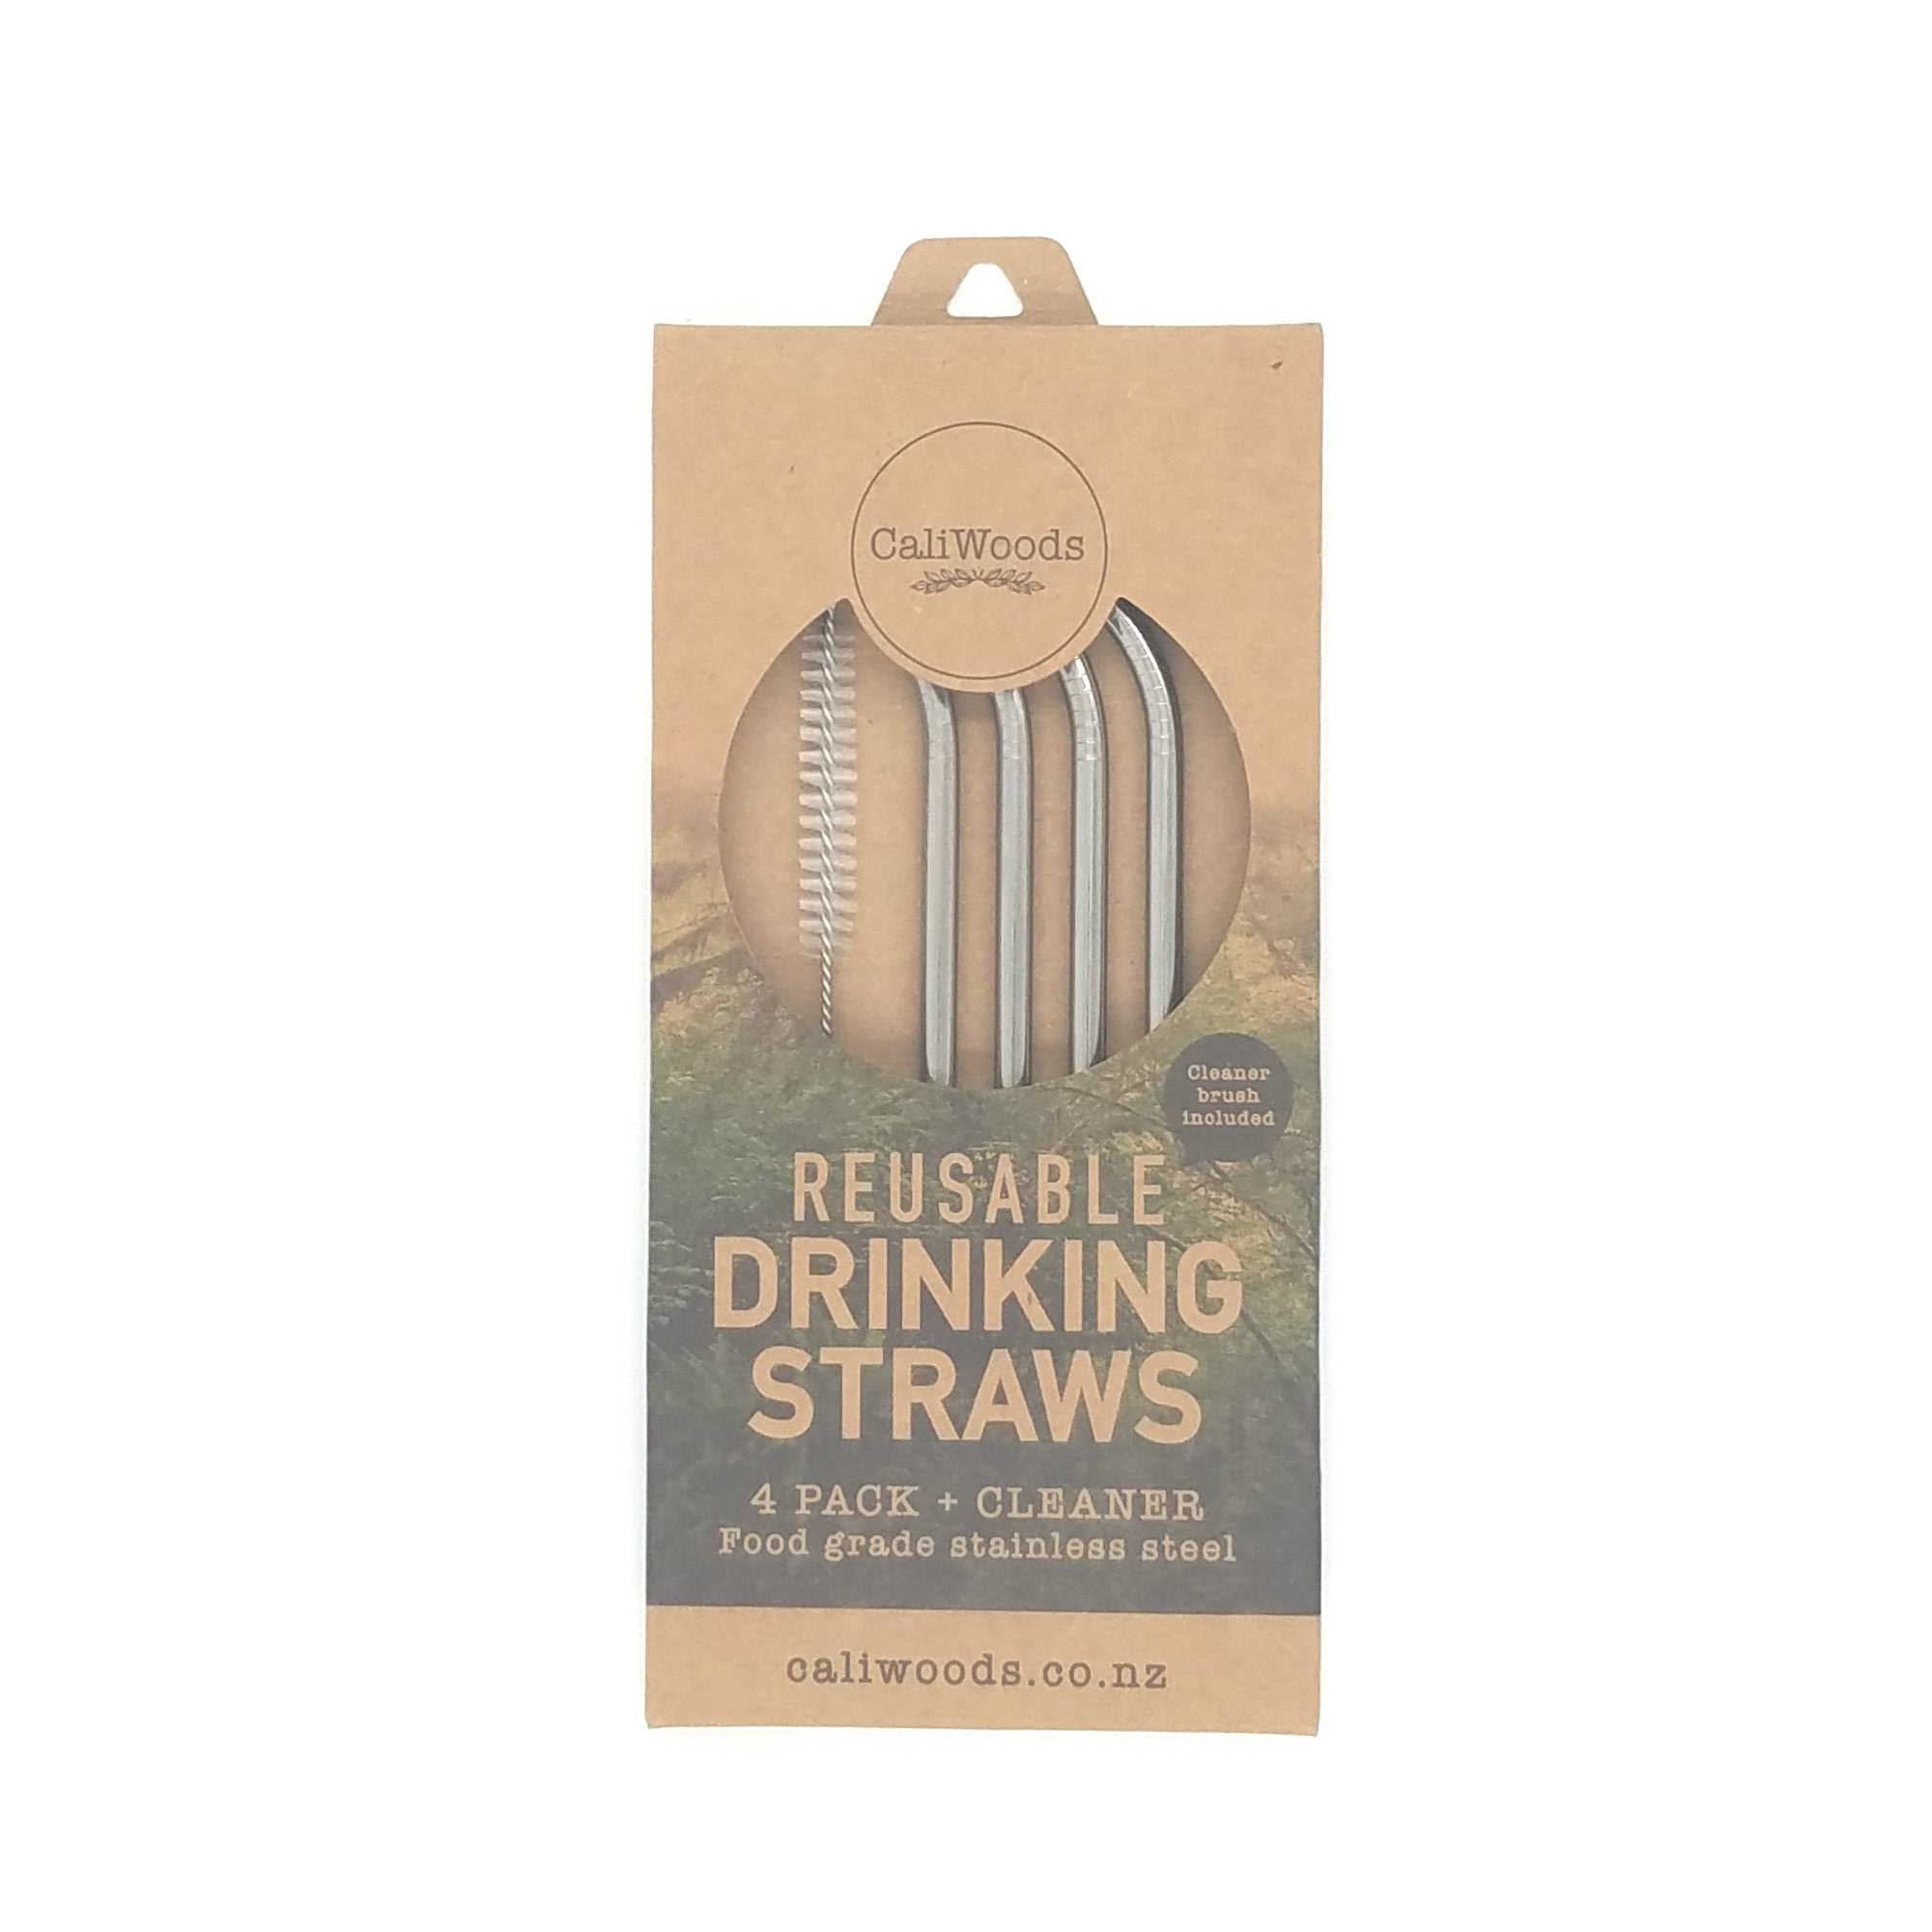 CaliWoods Reusable Drinking Straws NZD $17.90